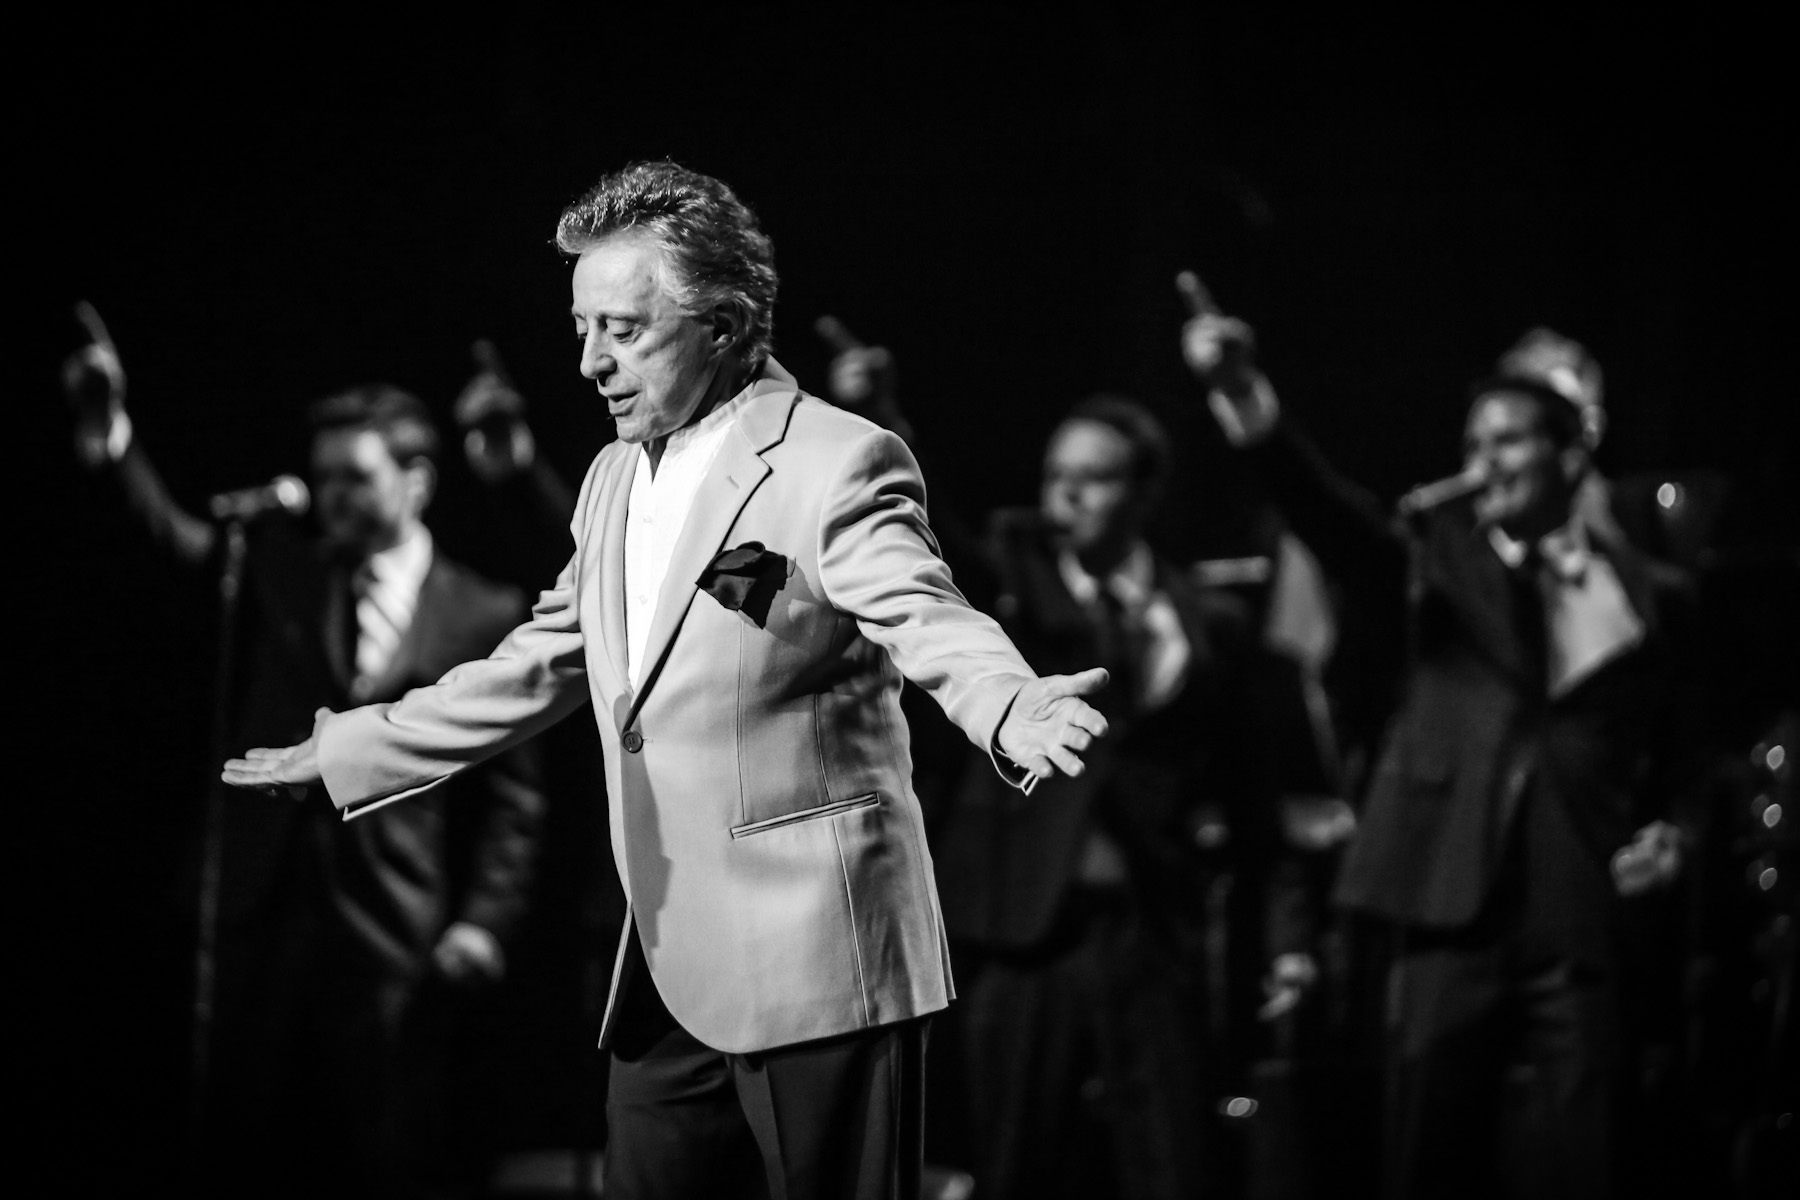 Frankie Valli at the Royal Albert Hall by Christie Goodwin